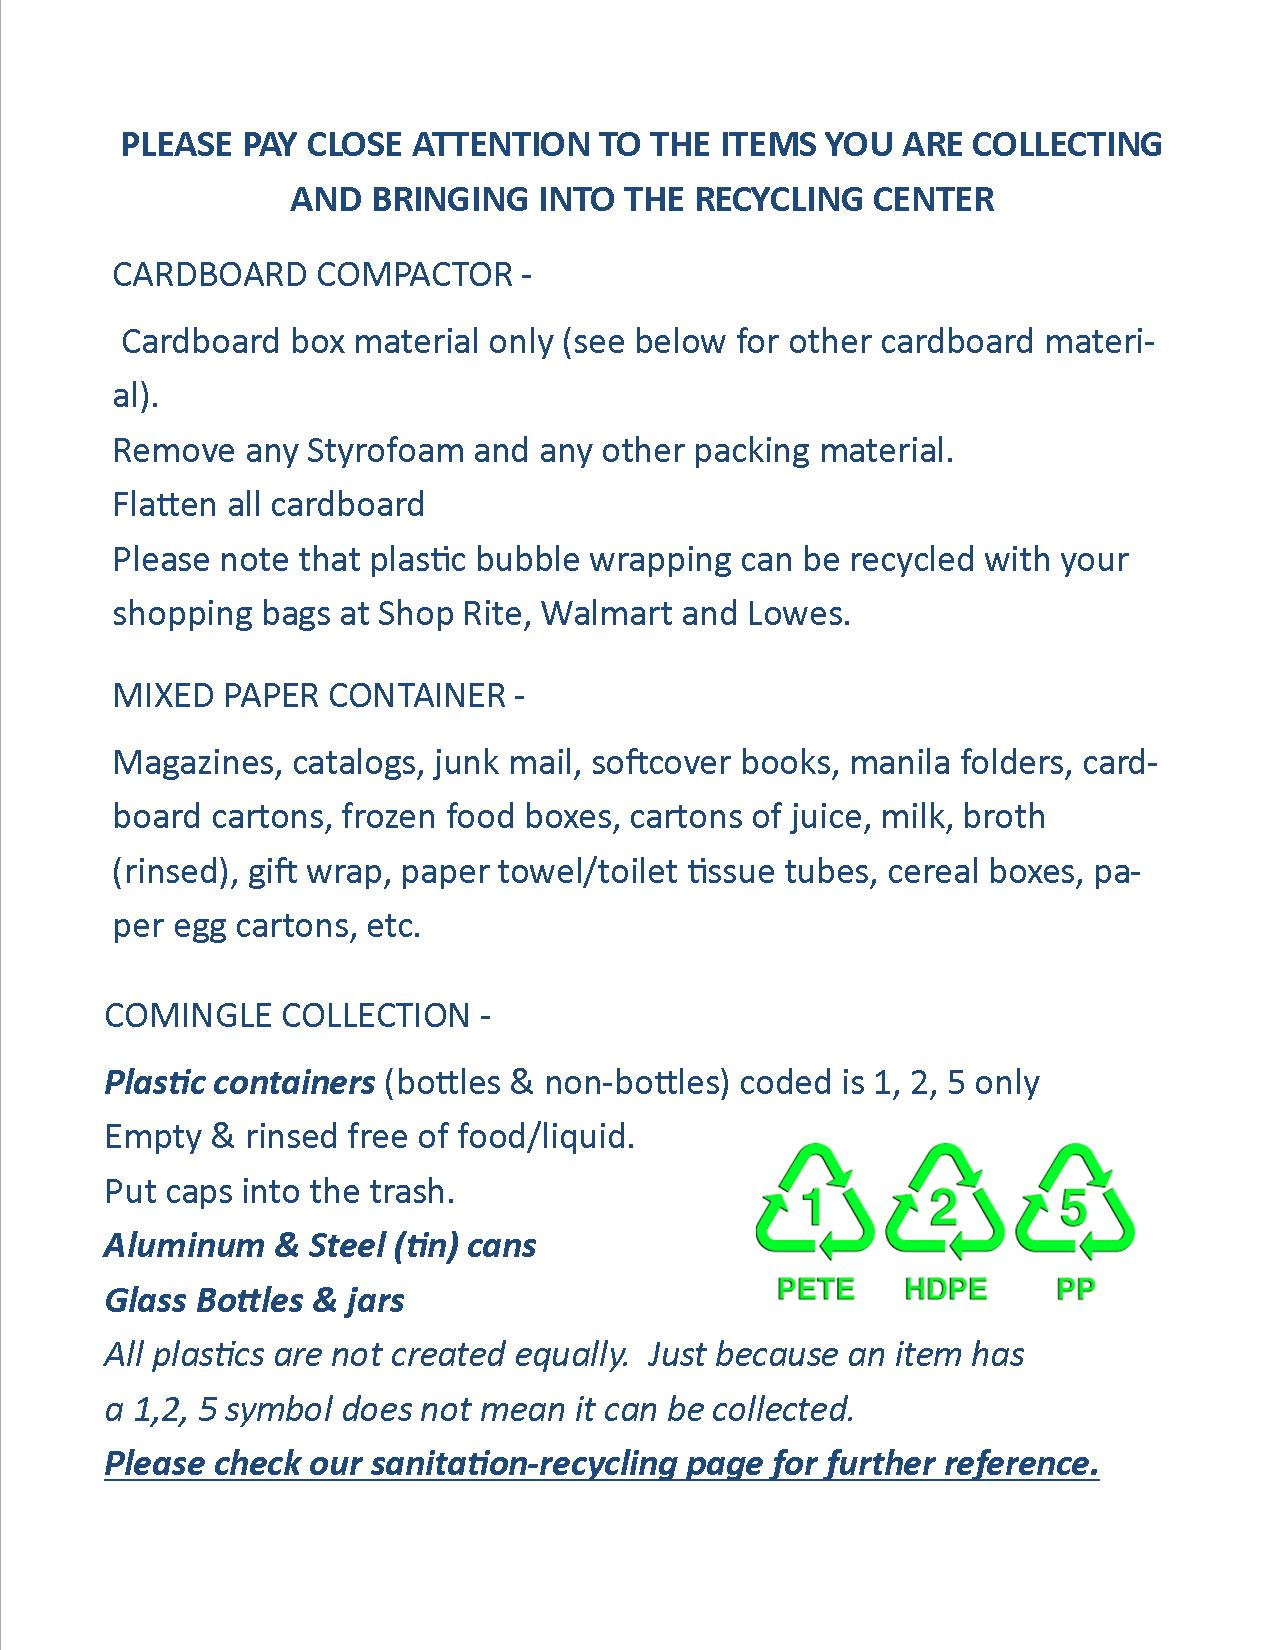 2019 FB recycling center container collection